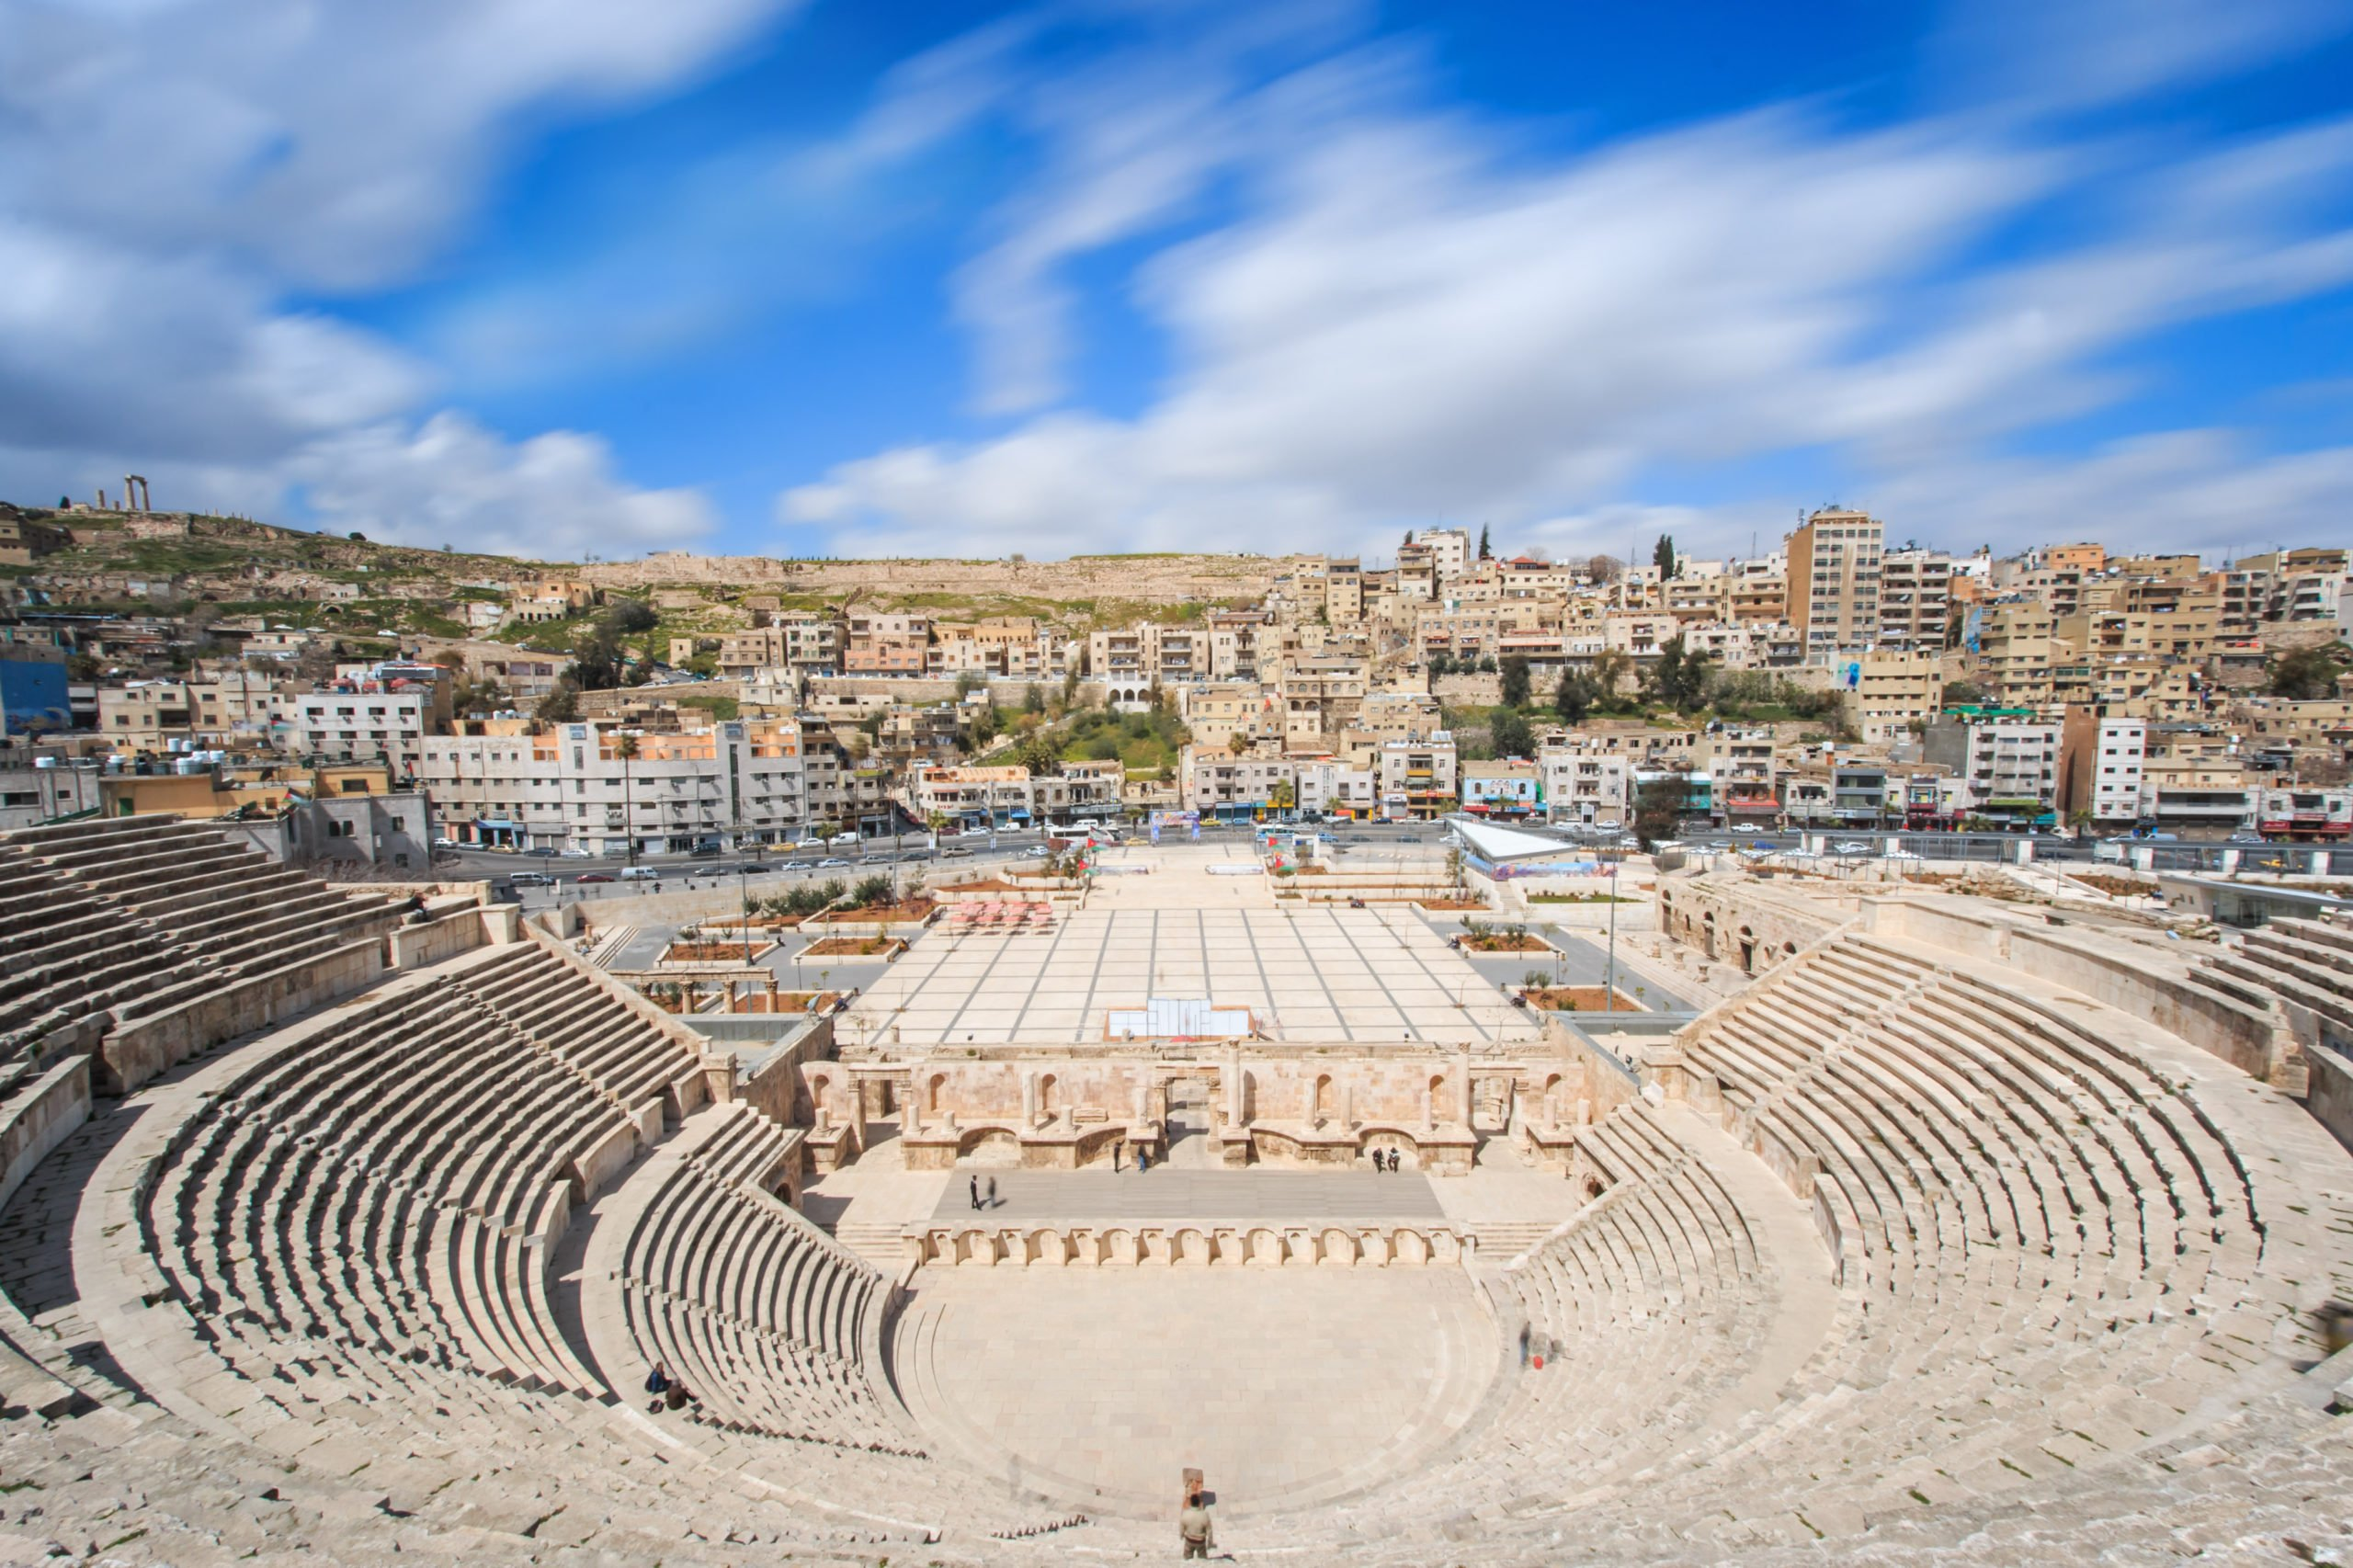 Discover The City Of Amman On The 13 Day Israel, Jordan, Dubai And Abu Dhabi Package Tour